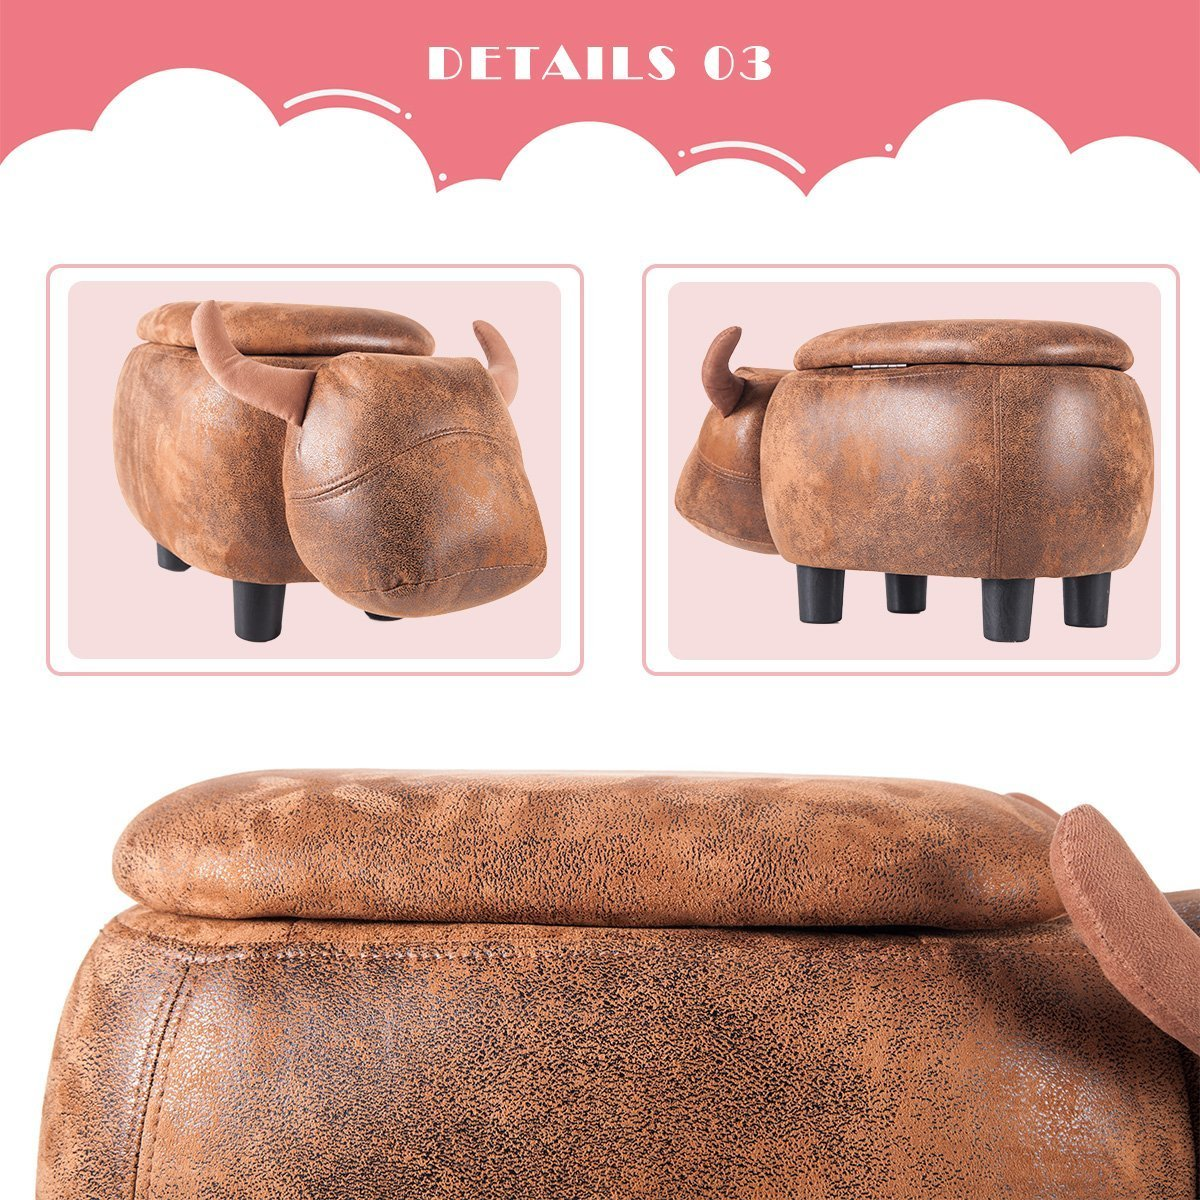 Merax Have-Fun Series Upholstered Ride-on Storage Ottoman Footrest Stool with Vivid Adorable Animal Shape (Brown Buffalo) by Merax (Image #7)